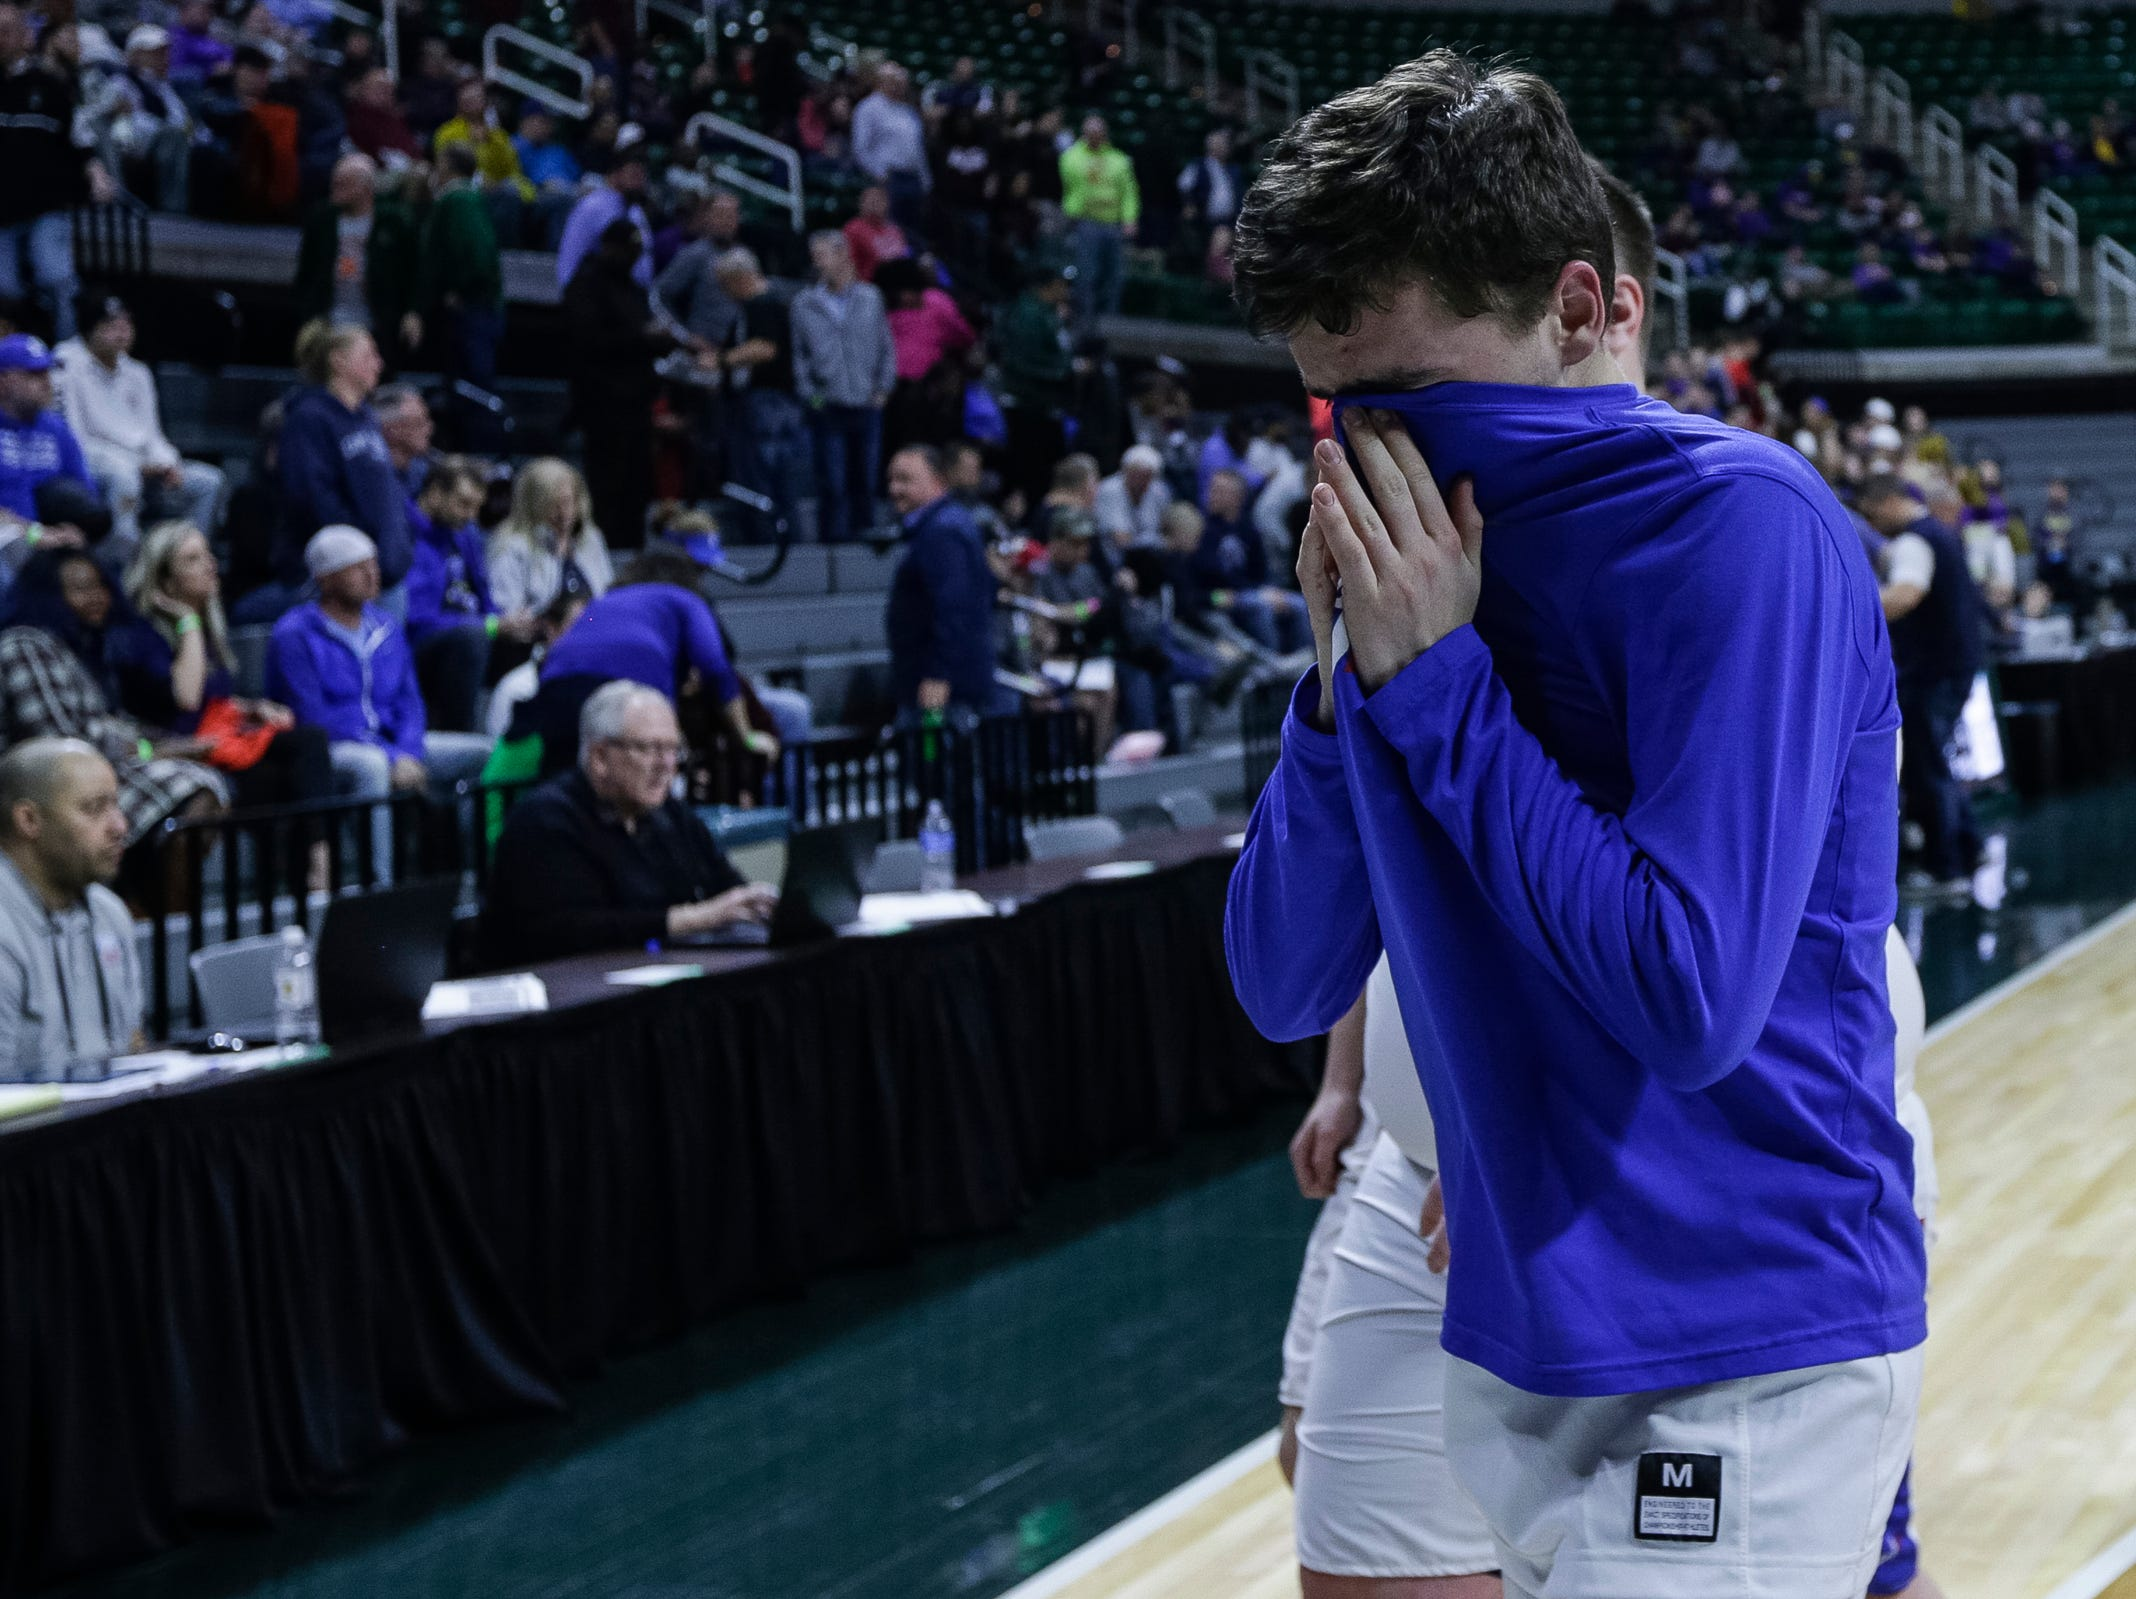 Dollar Bay players walk off the court after losing to Southfield Christian 55-28 at the MHSAA Division 4 semifinal at the Breslin Center in East Lansing, Thursday, March 14, 2019.